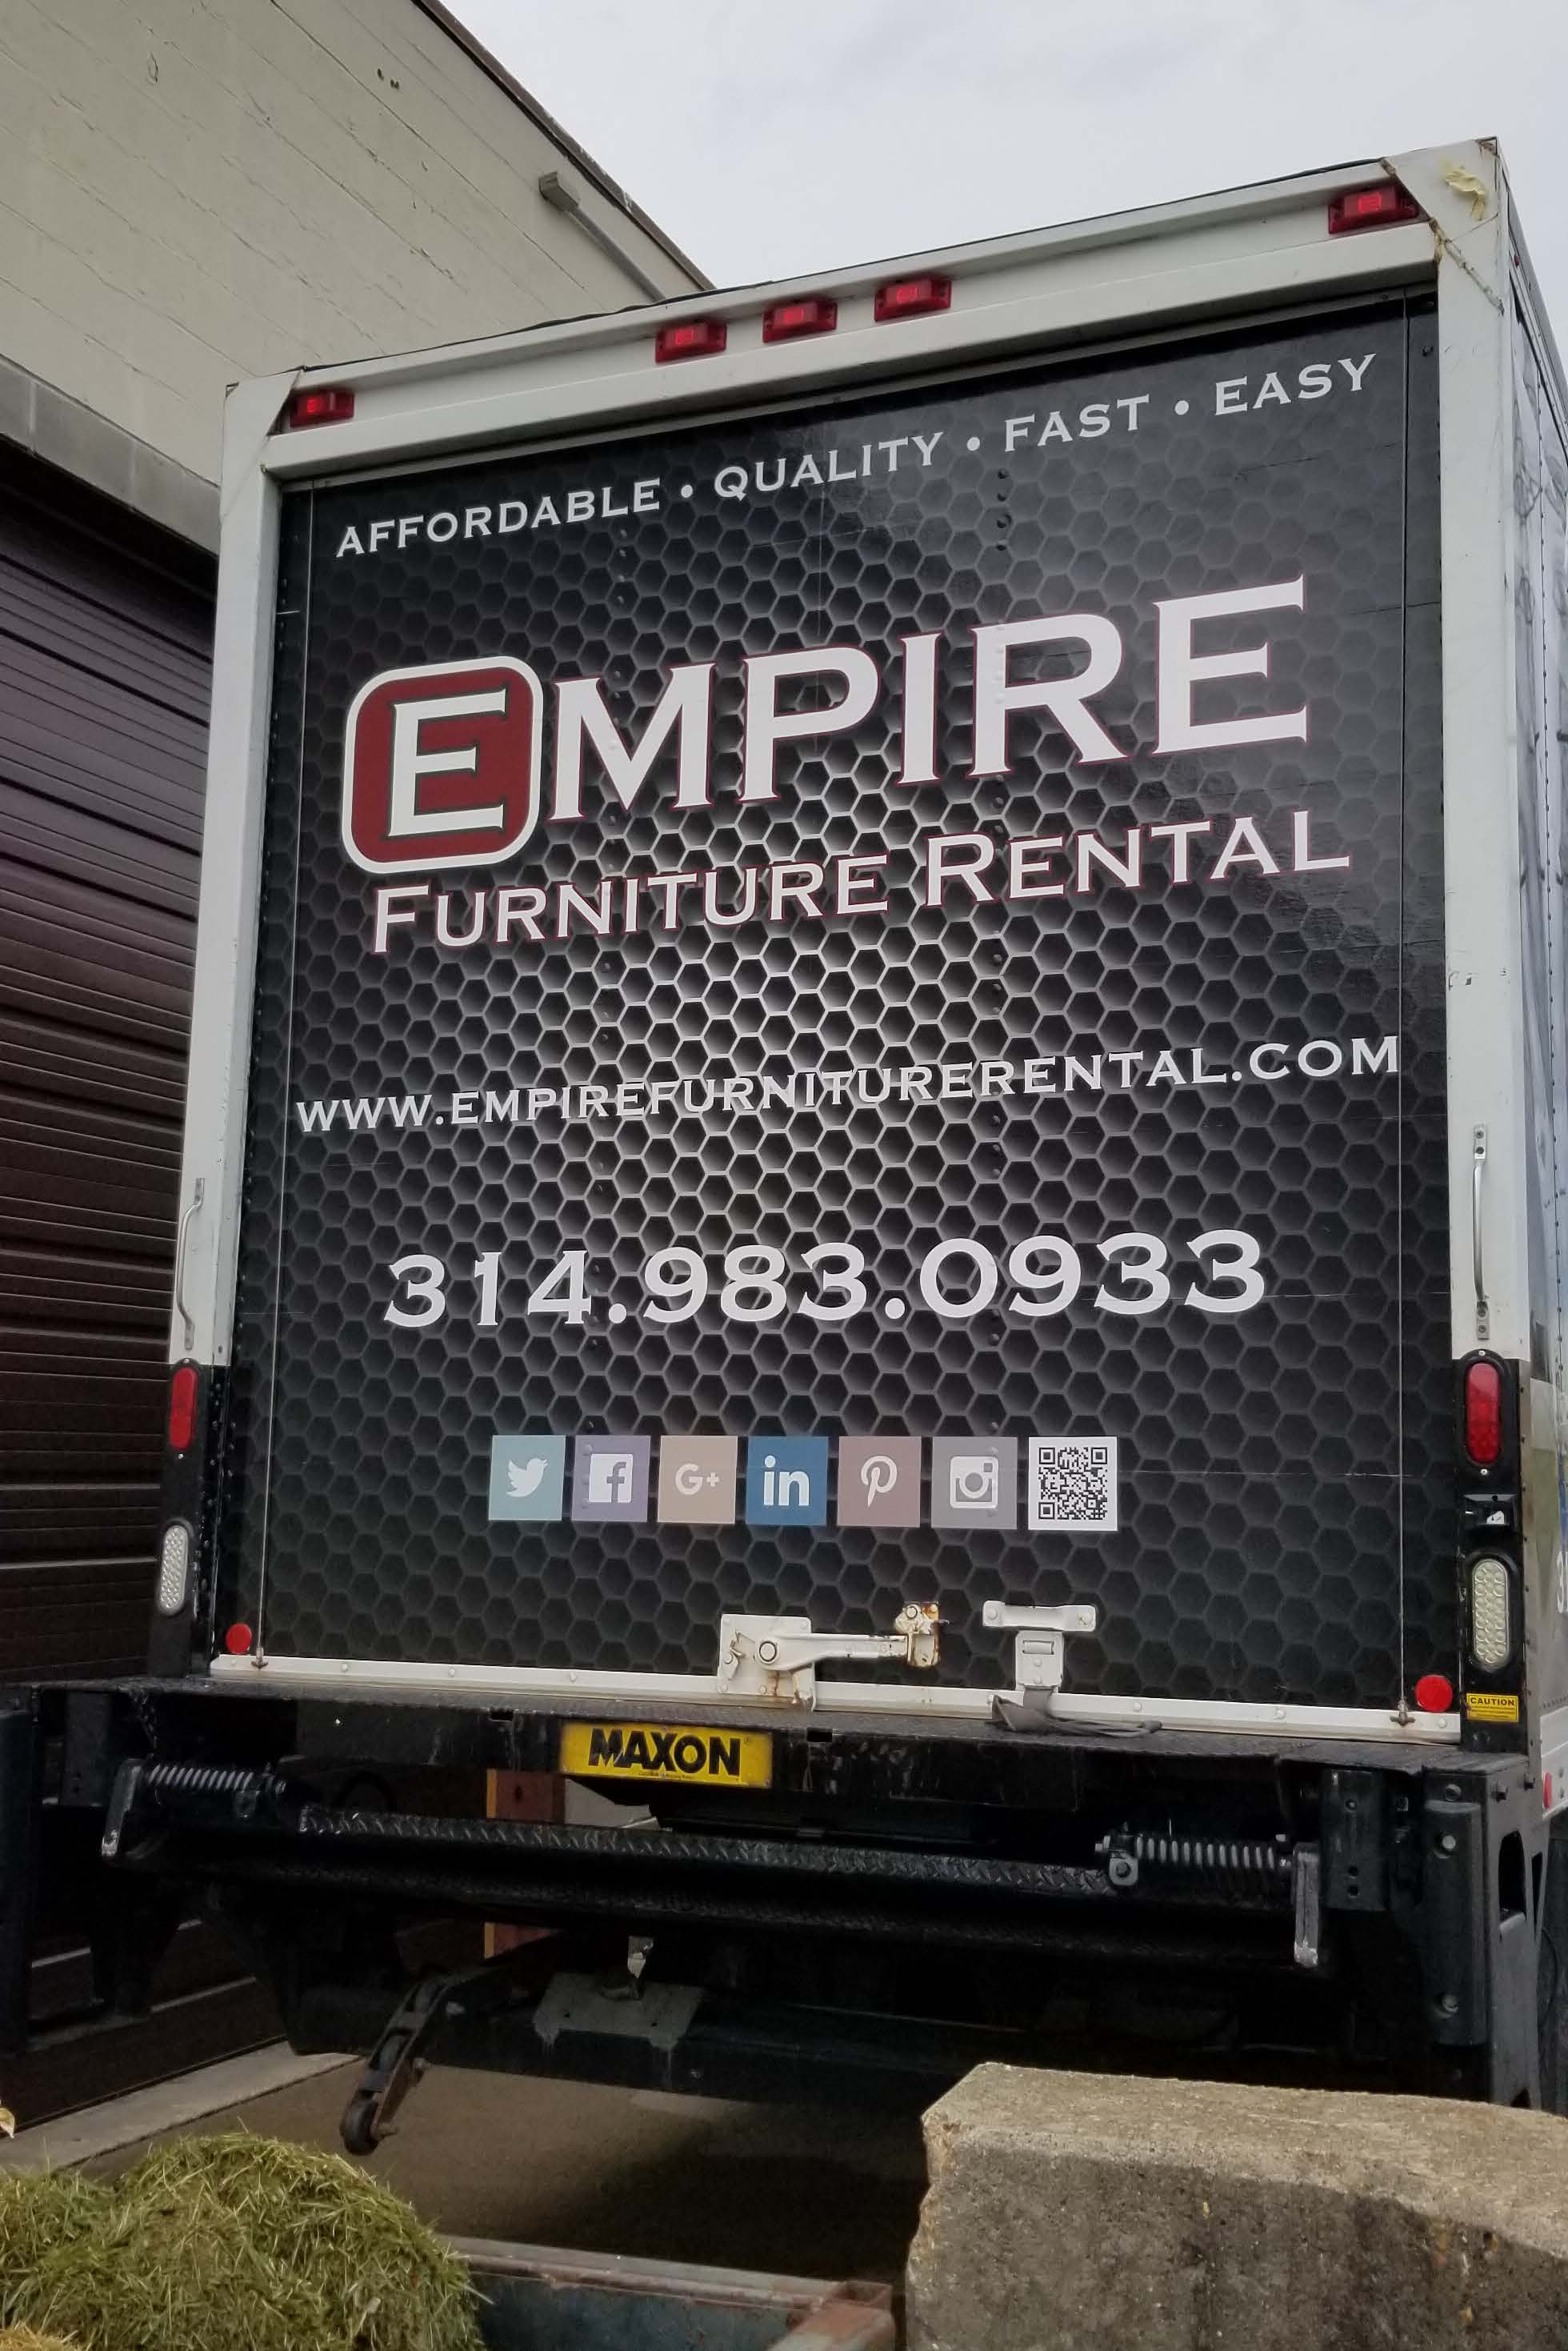 Empire Furniture Rental Truck Vehicle Wrap…